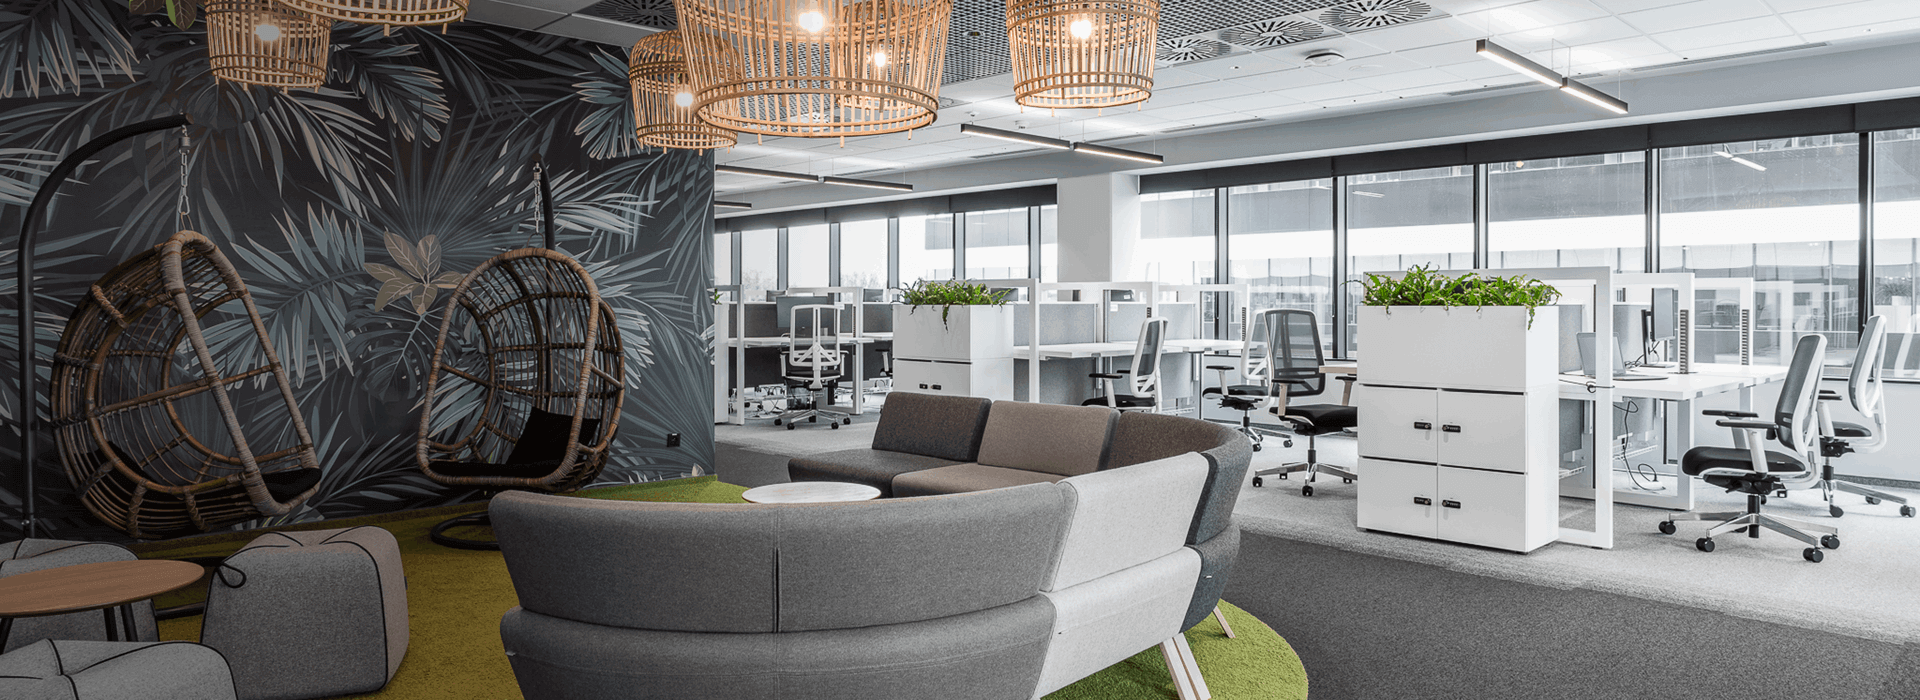 Meble biurowe – Mikomax Smart Office